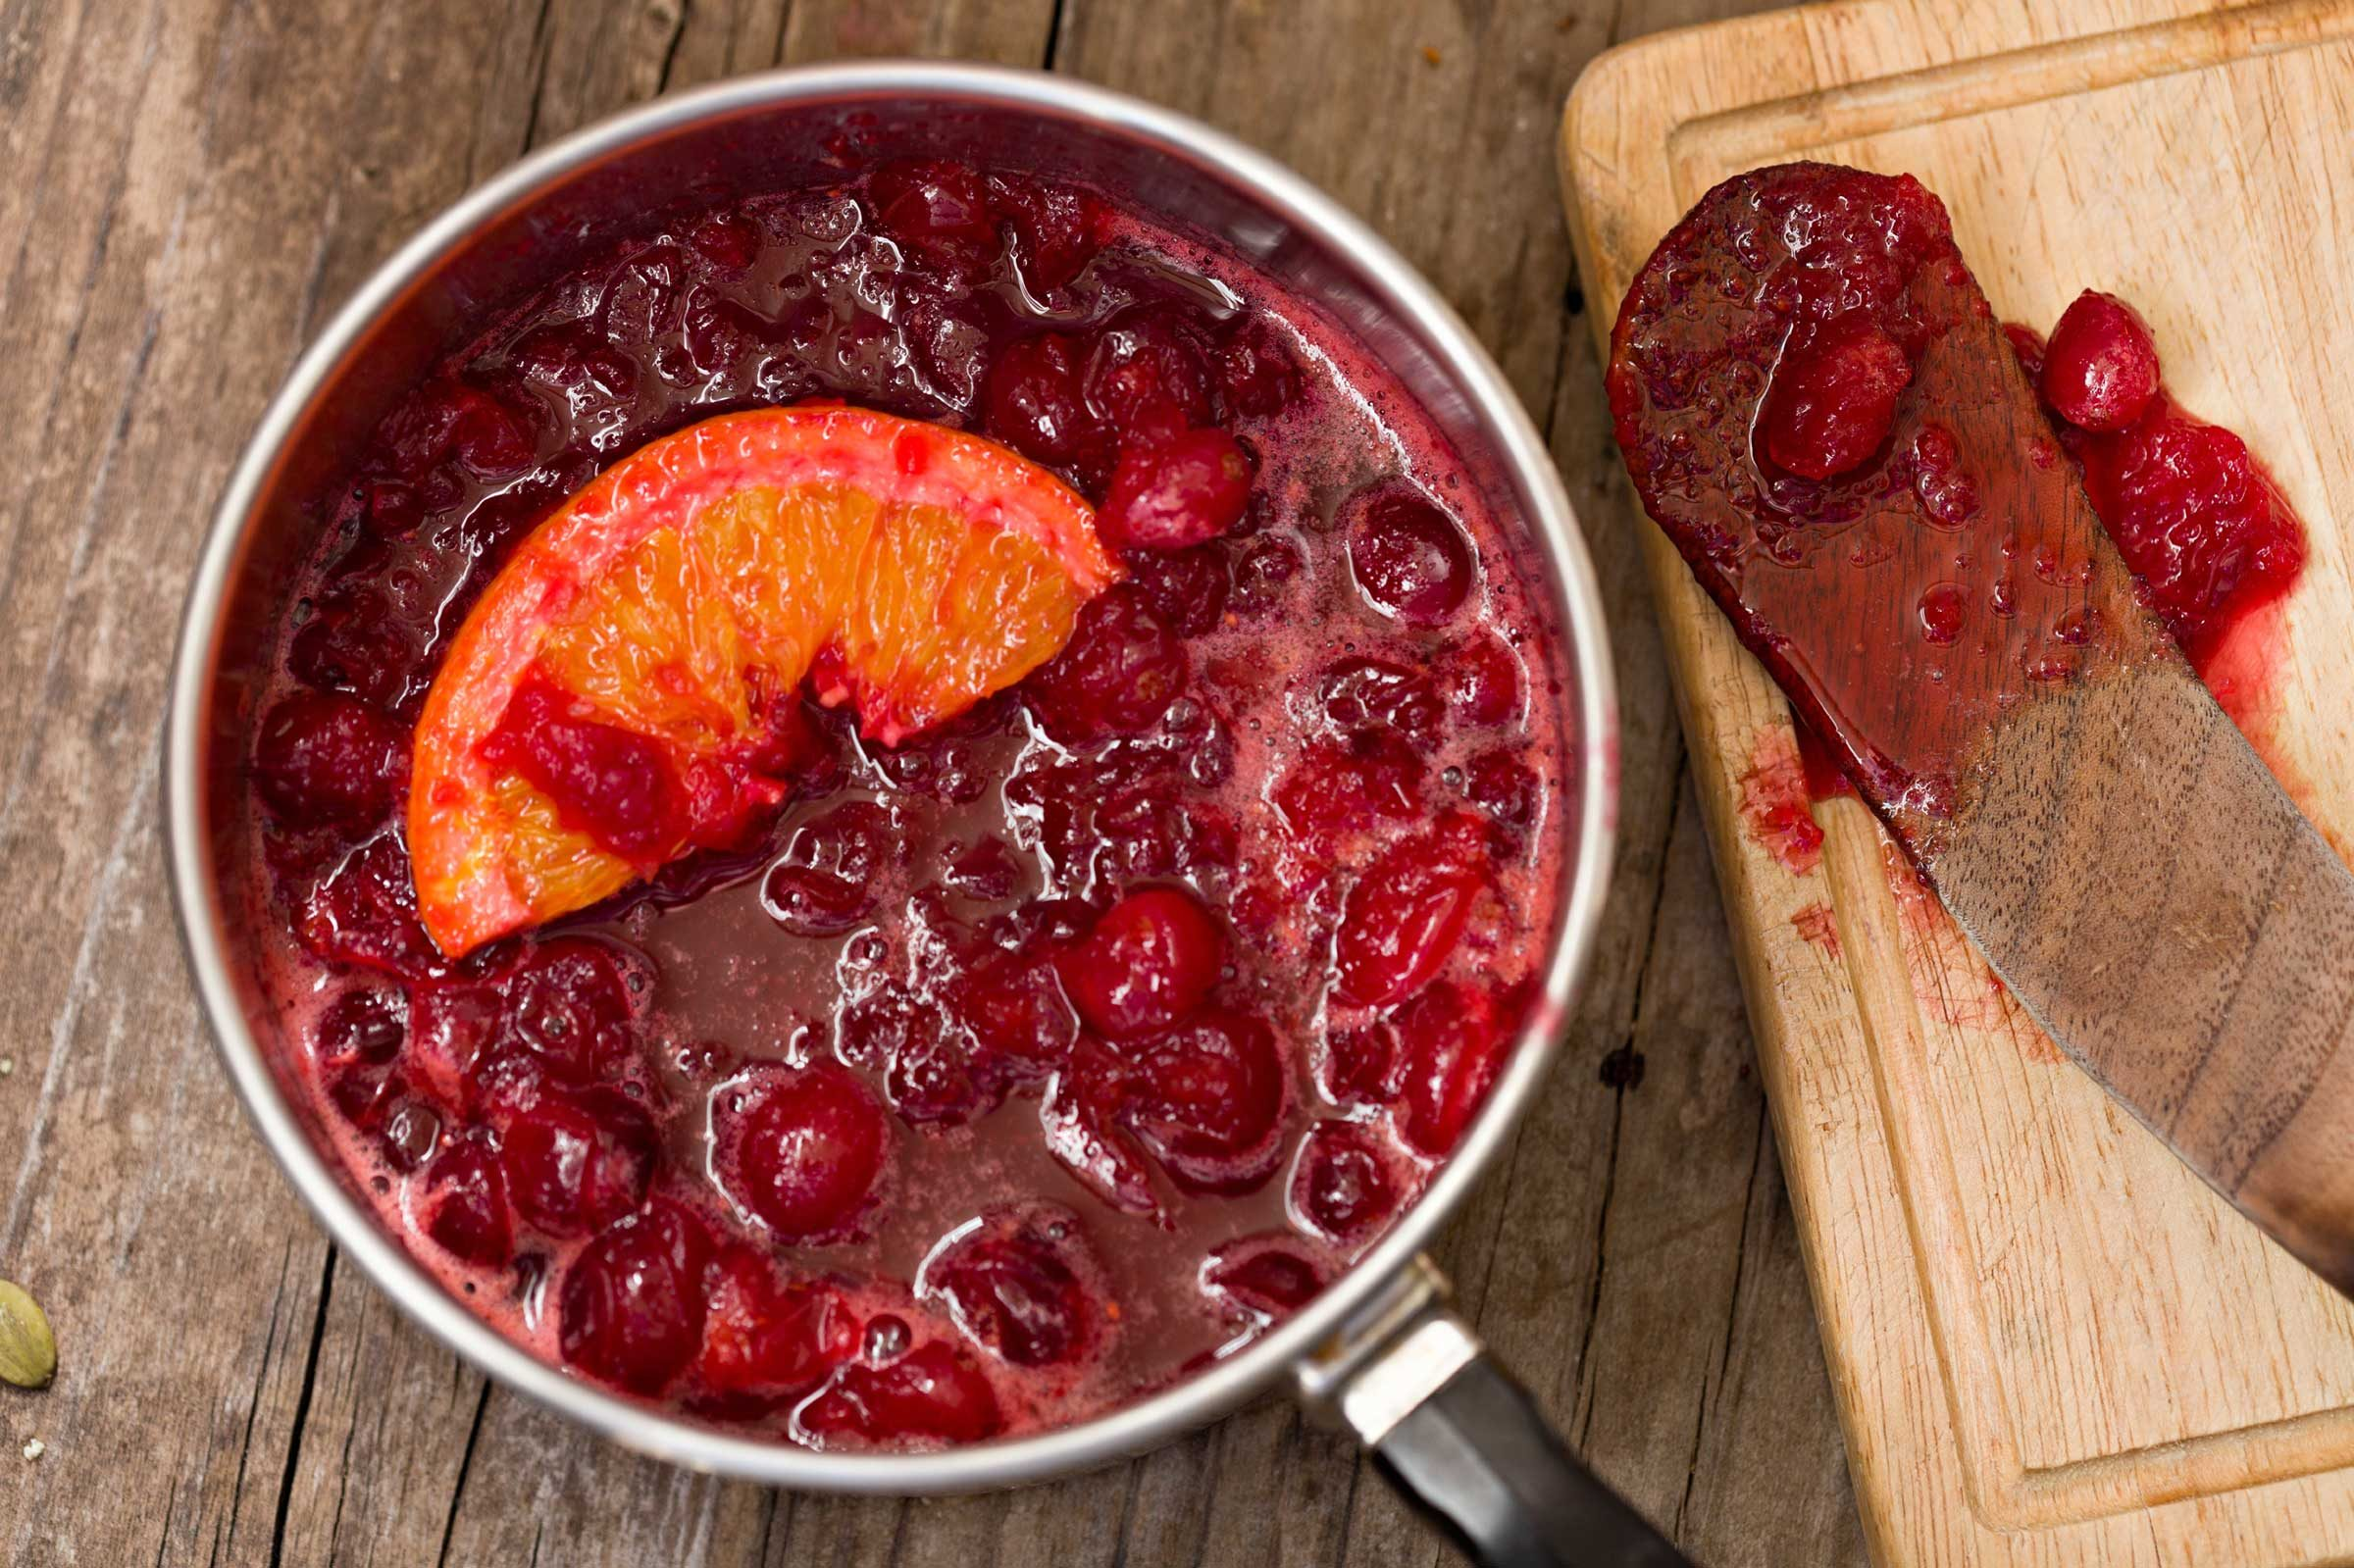 Sweetened cranberry sauce: 110 calories, 22 g sugar per 1/4 cup